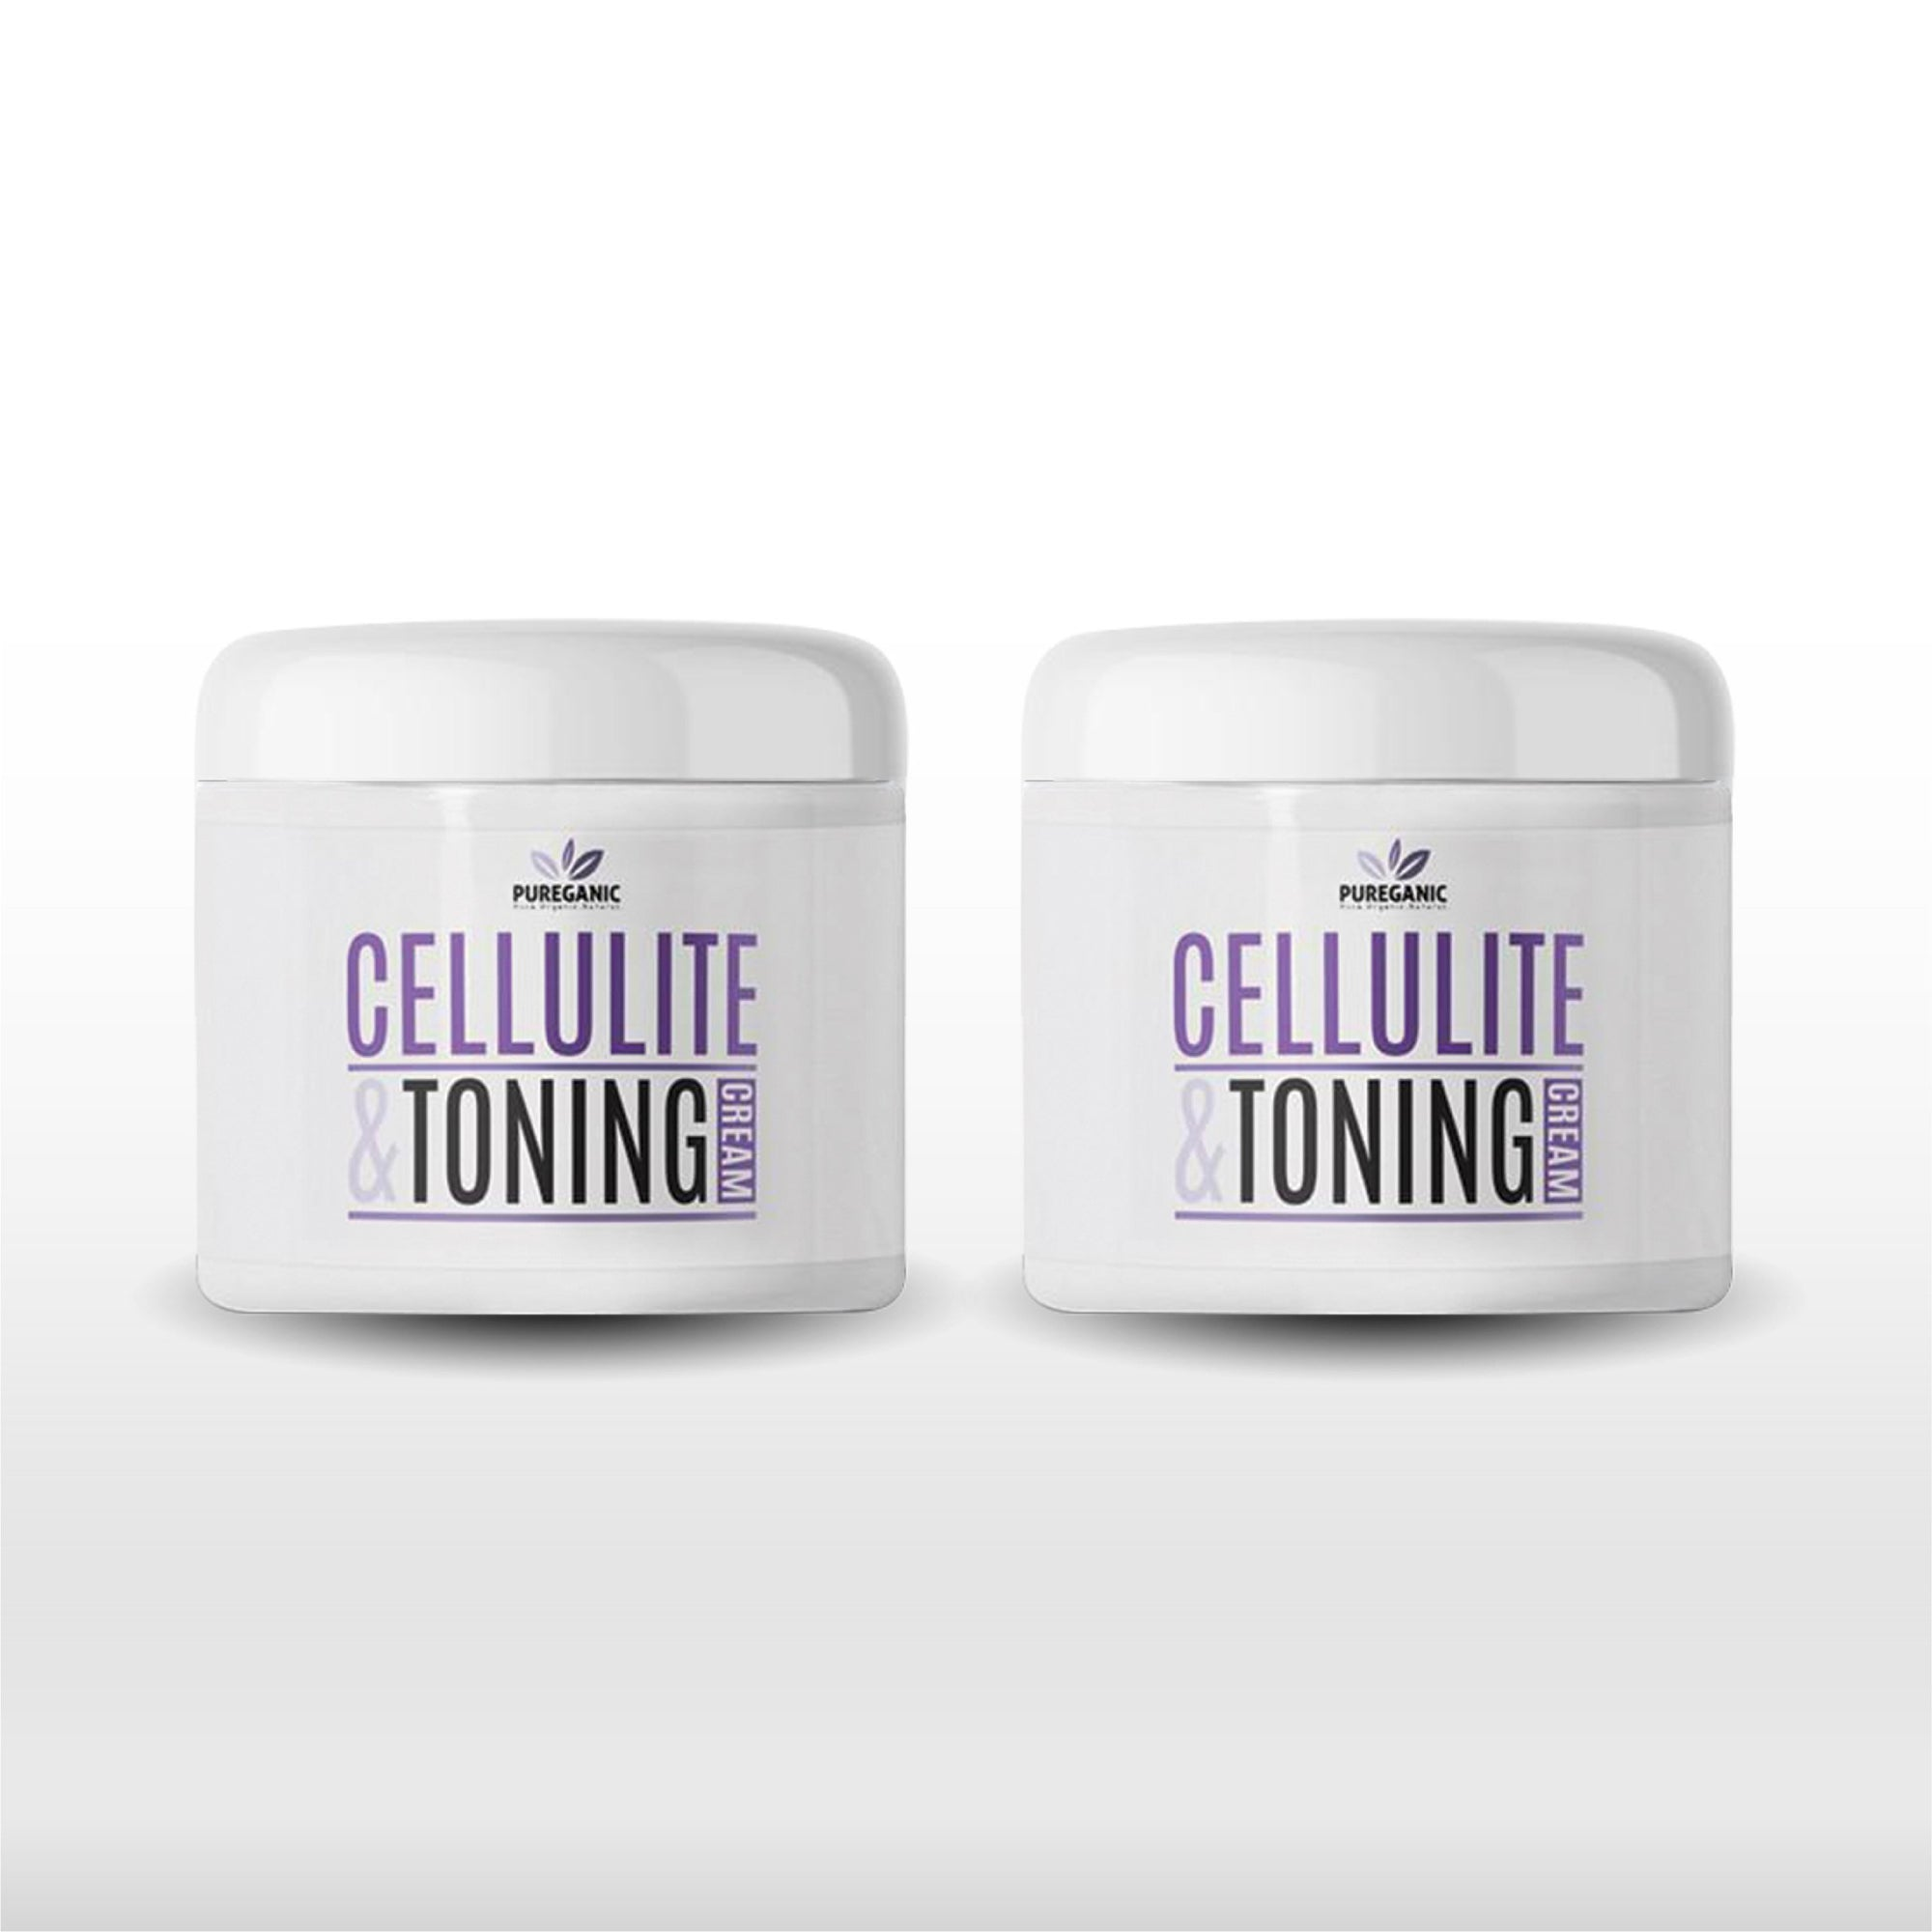 Pureganic Cellulite & Toning Cream - 2 Pack